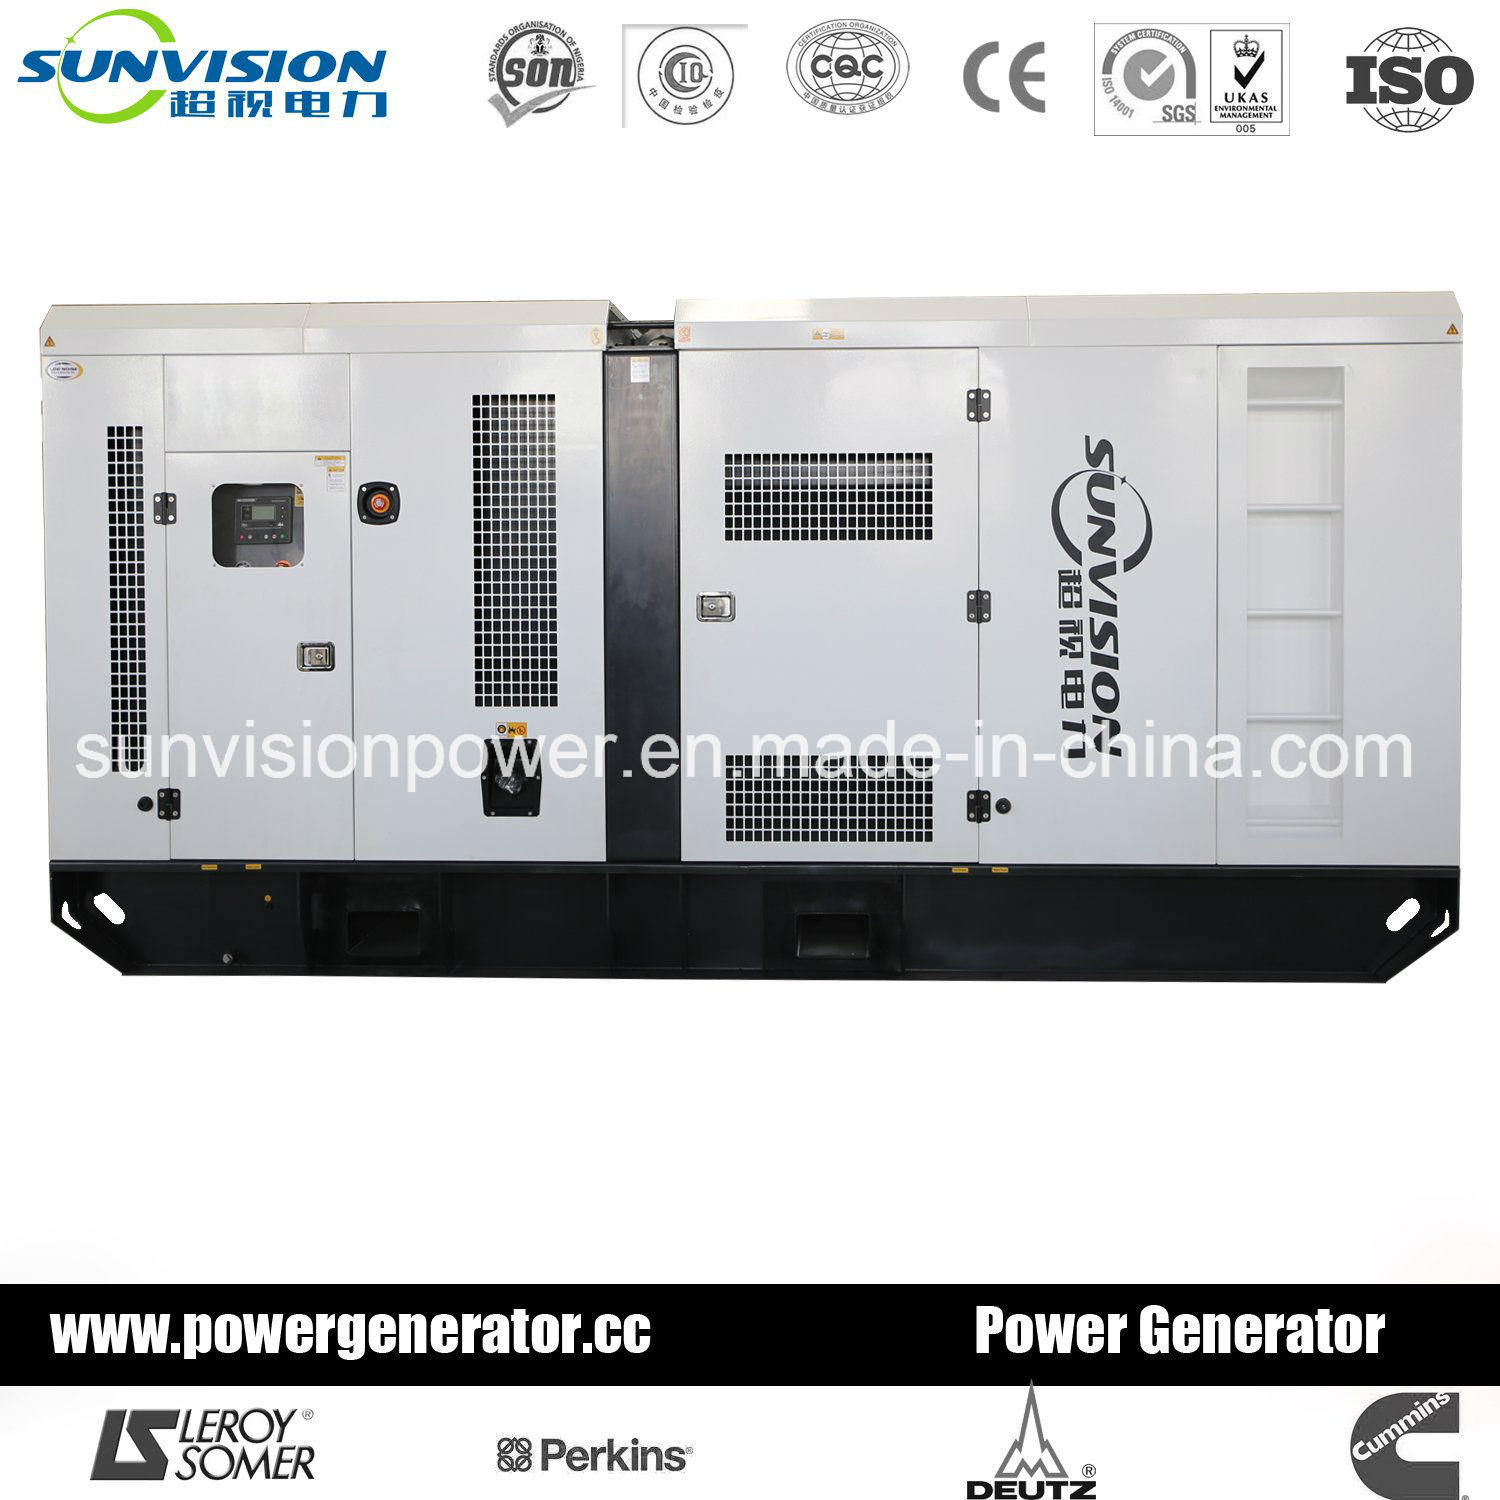 400kVA Super Silent Generator Set with Perkins Engine (60Hz)